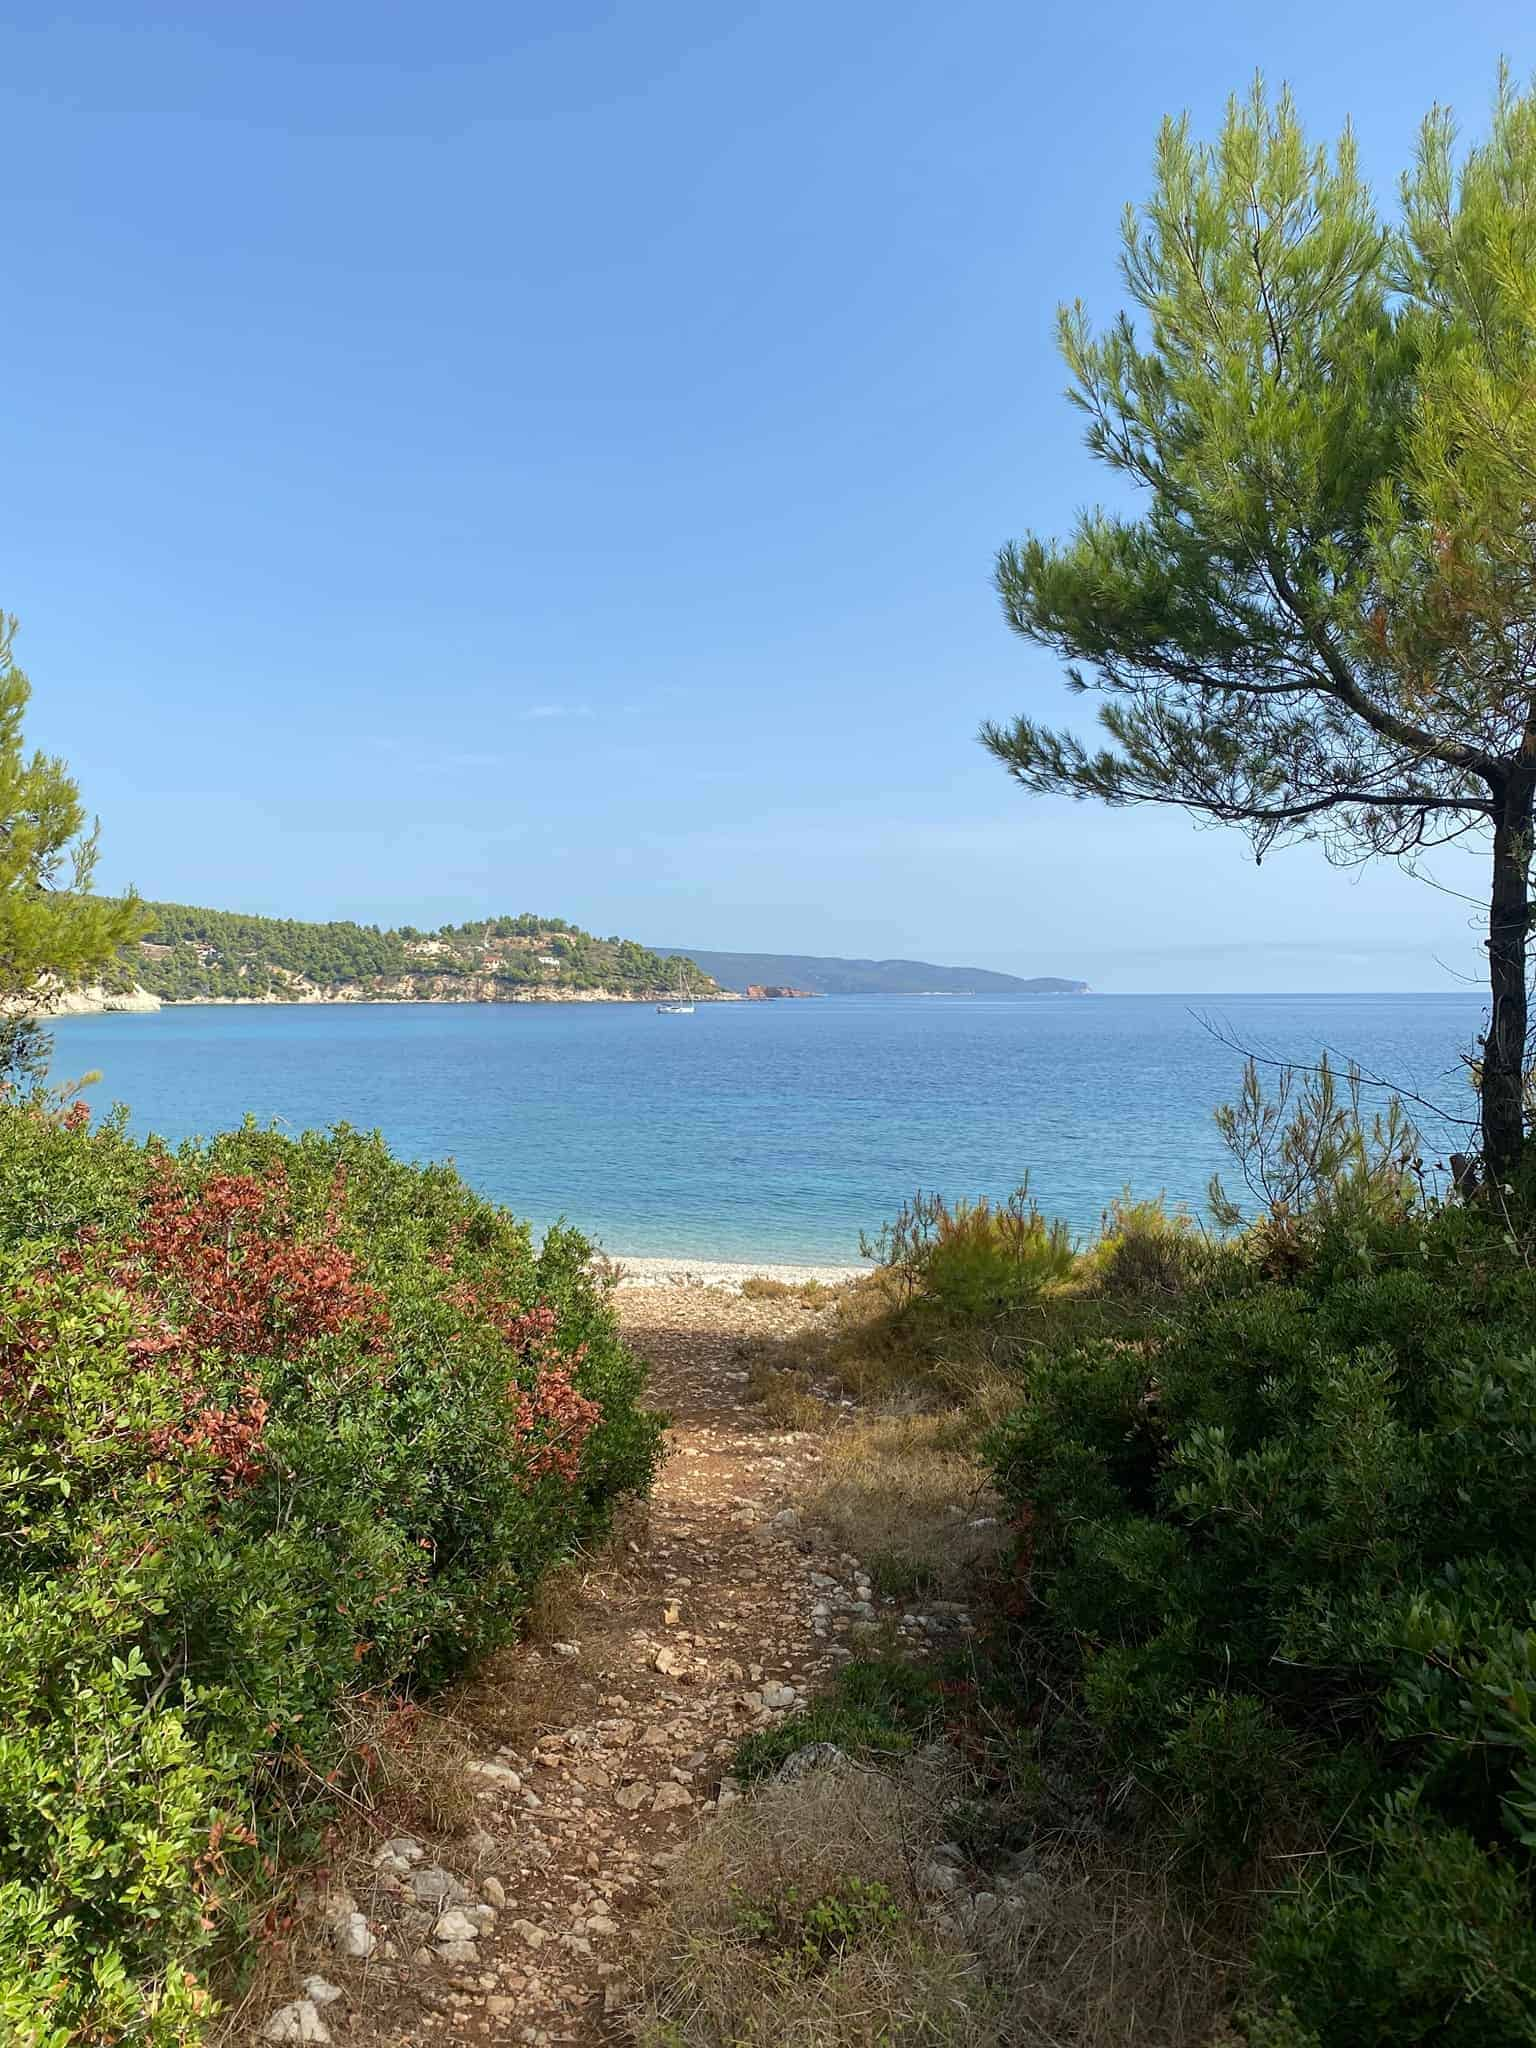 Alonissos is filled with incredible beaches